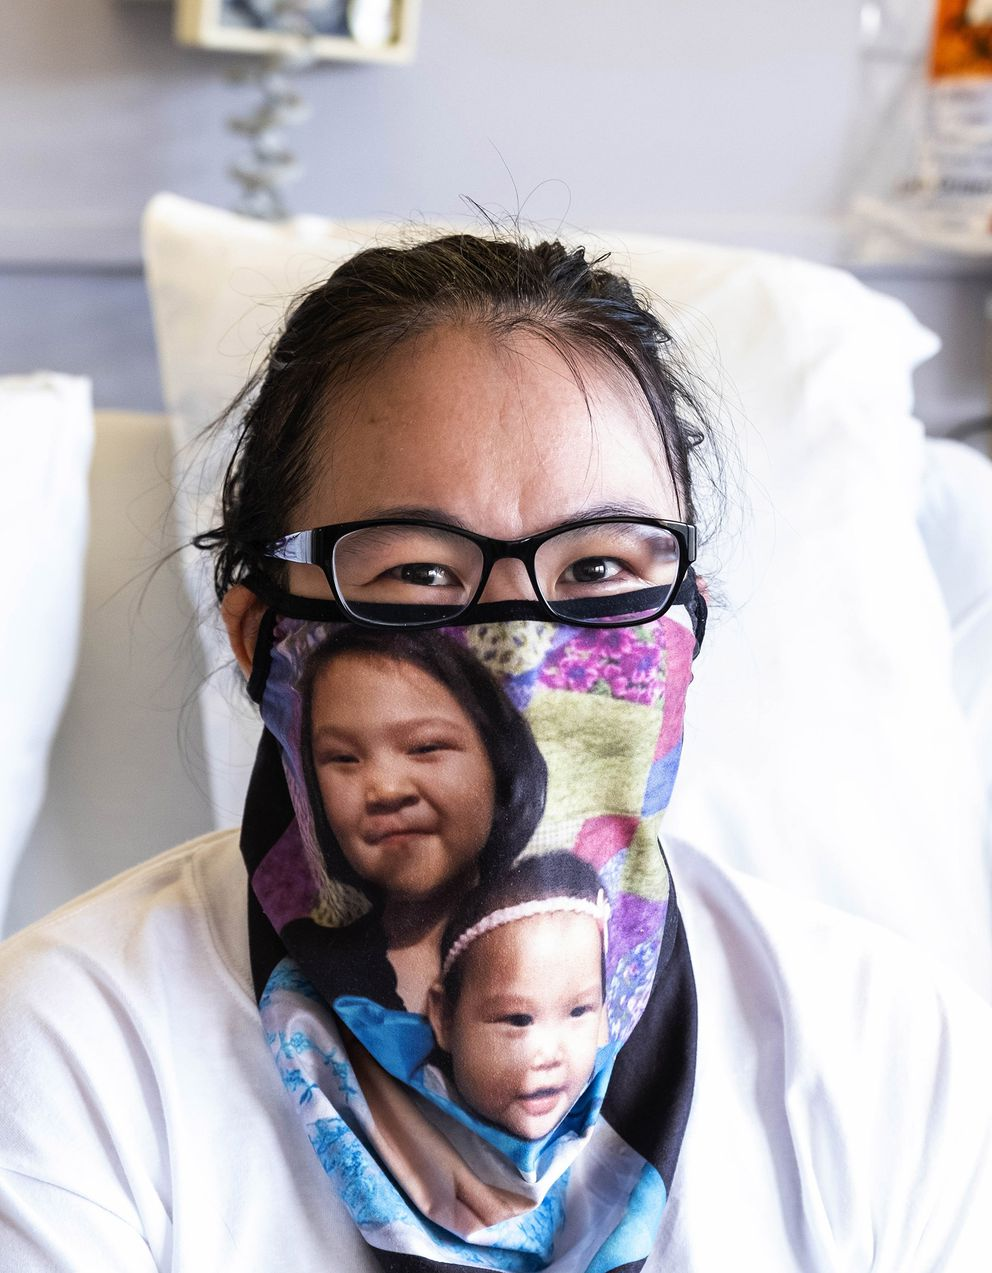 Nastasia Xavier contracted Covid in her small town in Alaska at Thanksgiving, and has been in hospitals in Alaska and Seattle ever since. She wears a mask she made herself of her two children - Leona, 13; and Sasha, 5 - to remind her of the family she has left behind. Sheís due to begin her journey home Thursday, Feb. 4, 2021. (Photo by Dean Rutz / Seattle Times) Photographed February 3, 2021 216300